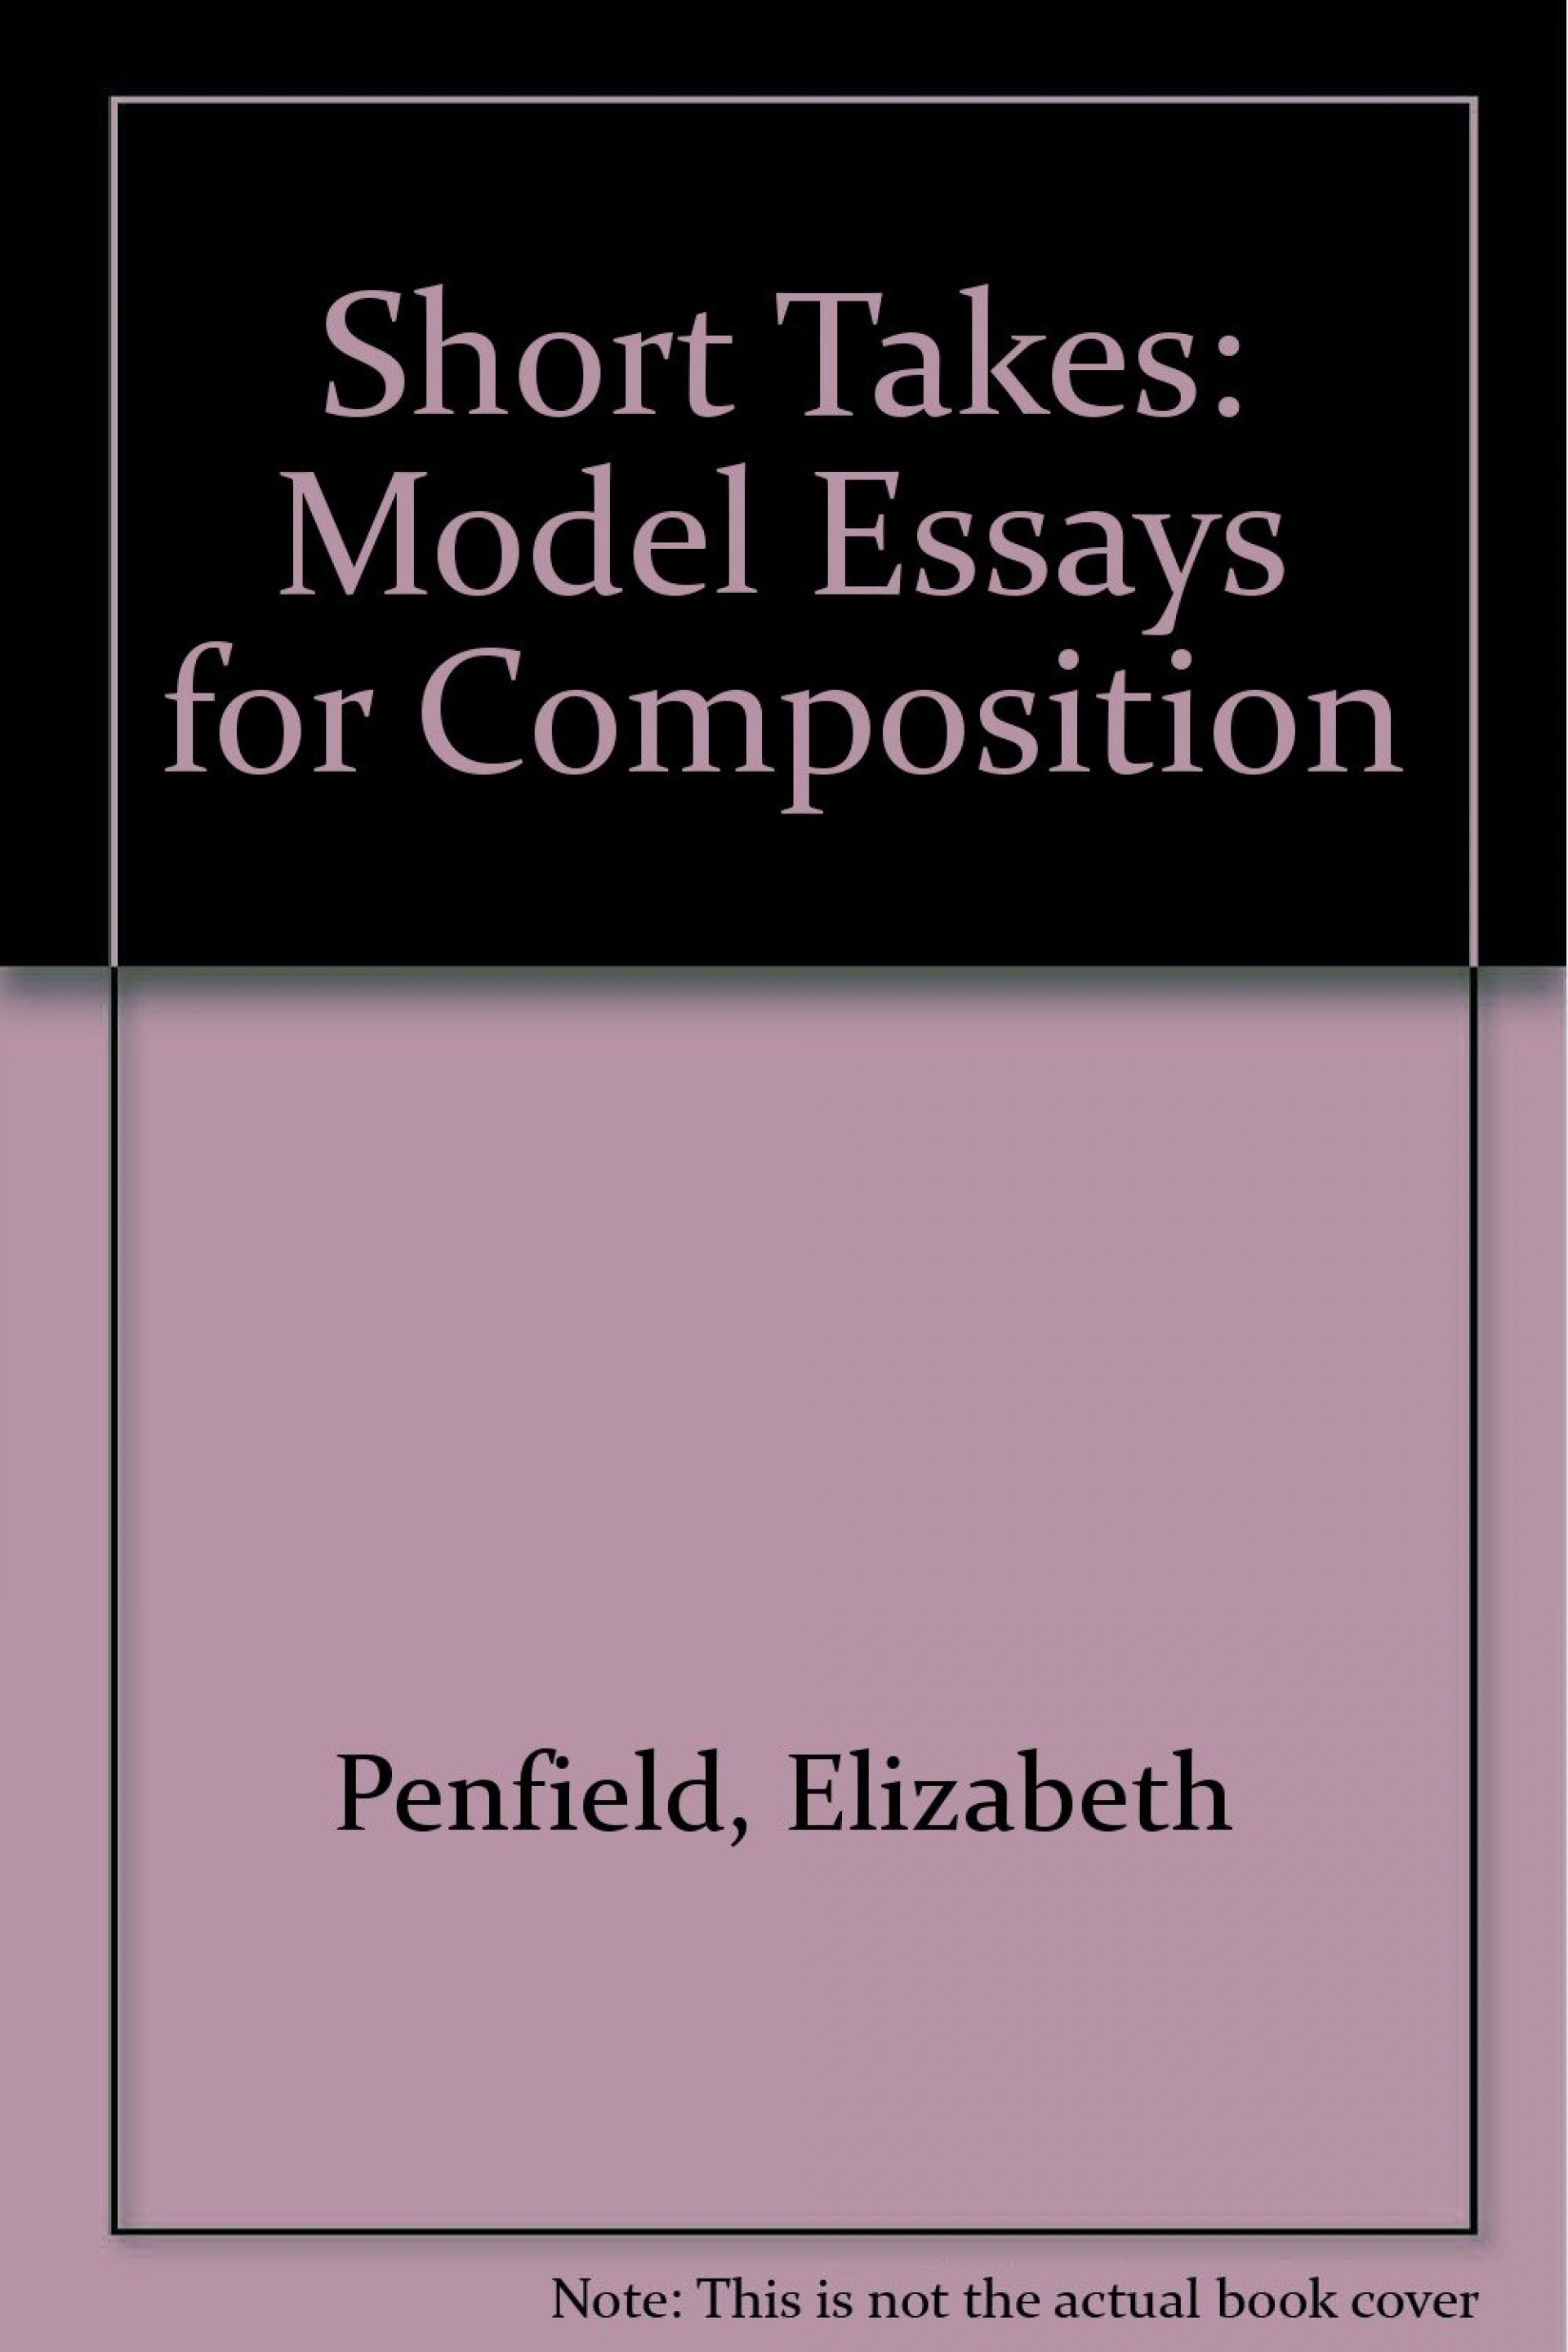 015 Essay Example 61cenqqb8bl Models For Writers Short Essays Singular Composition 12th Edition Pdf 13th 1920